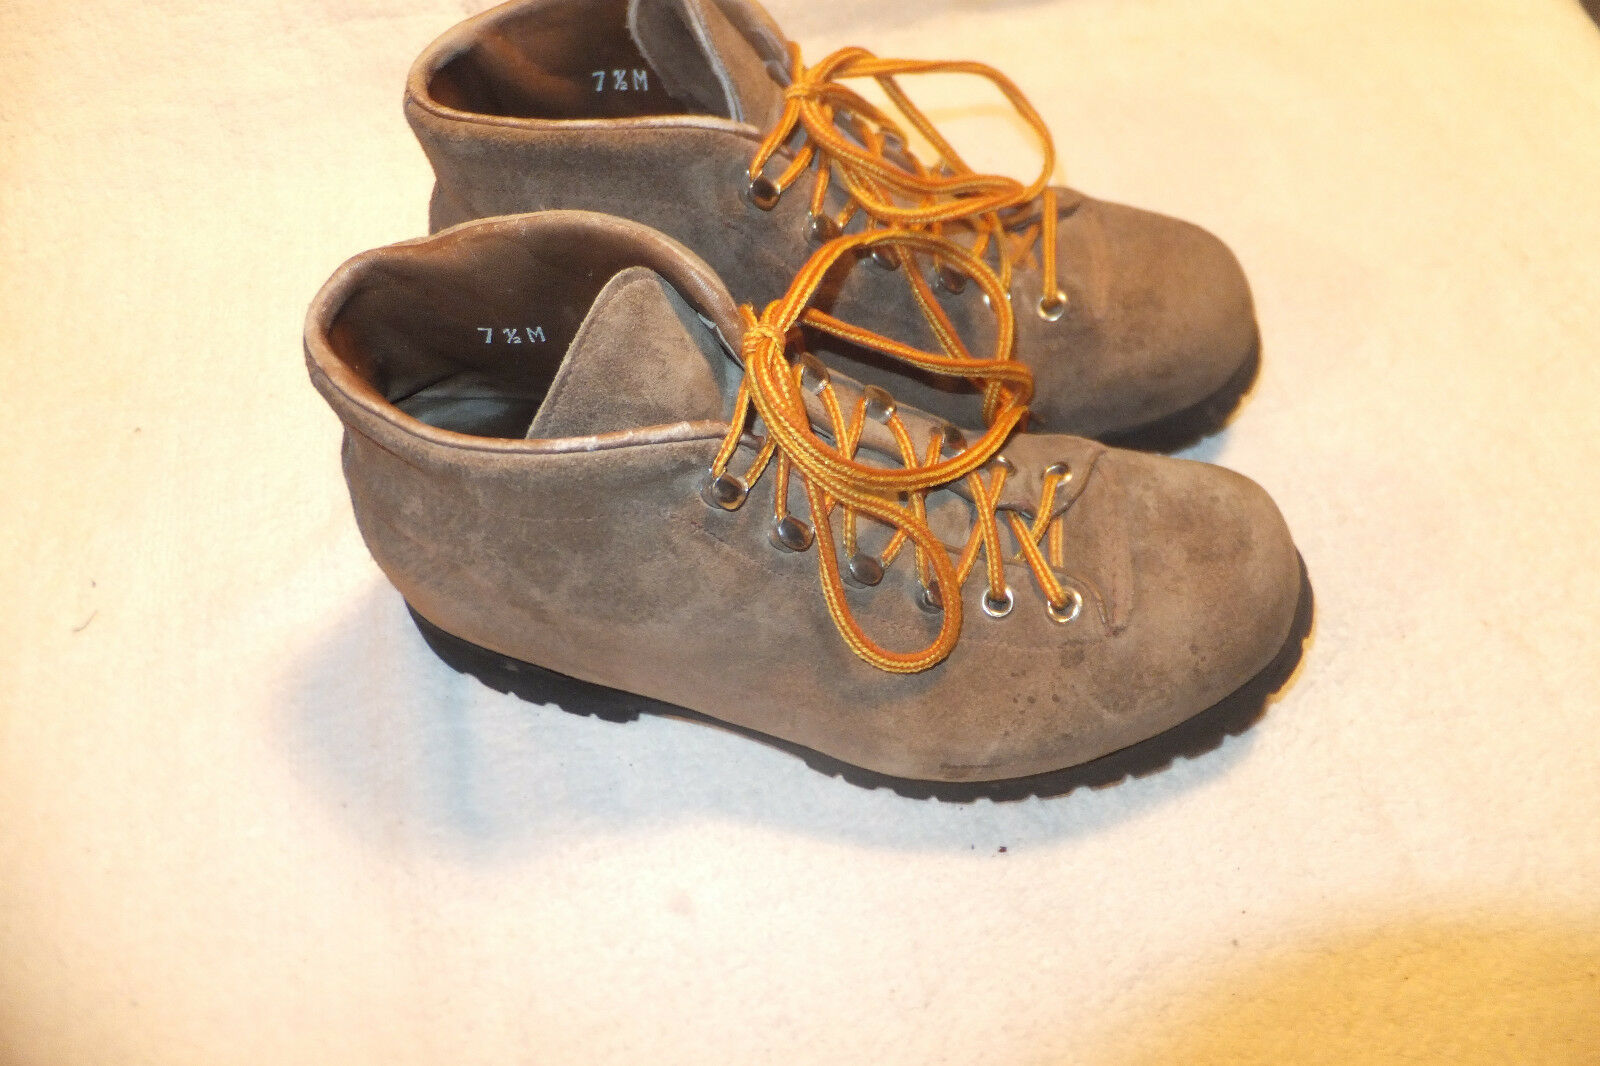 The Alps By Fabiano Tan Suede Hiking Boots Sz 7.5M Made In Italy